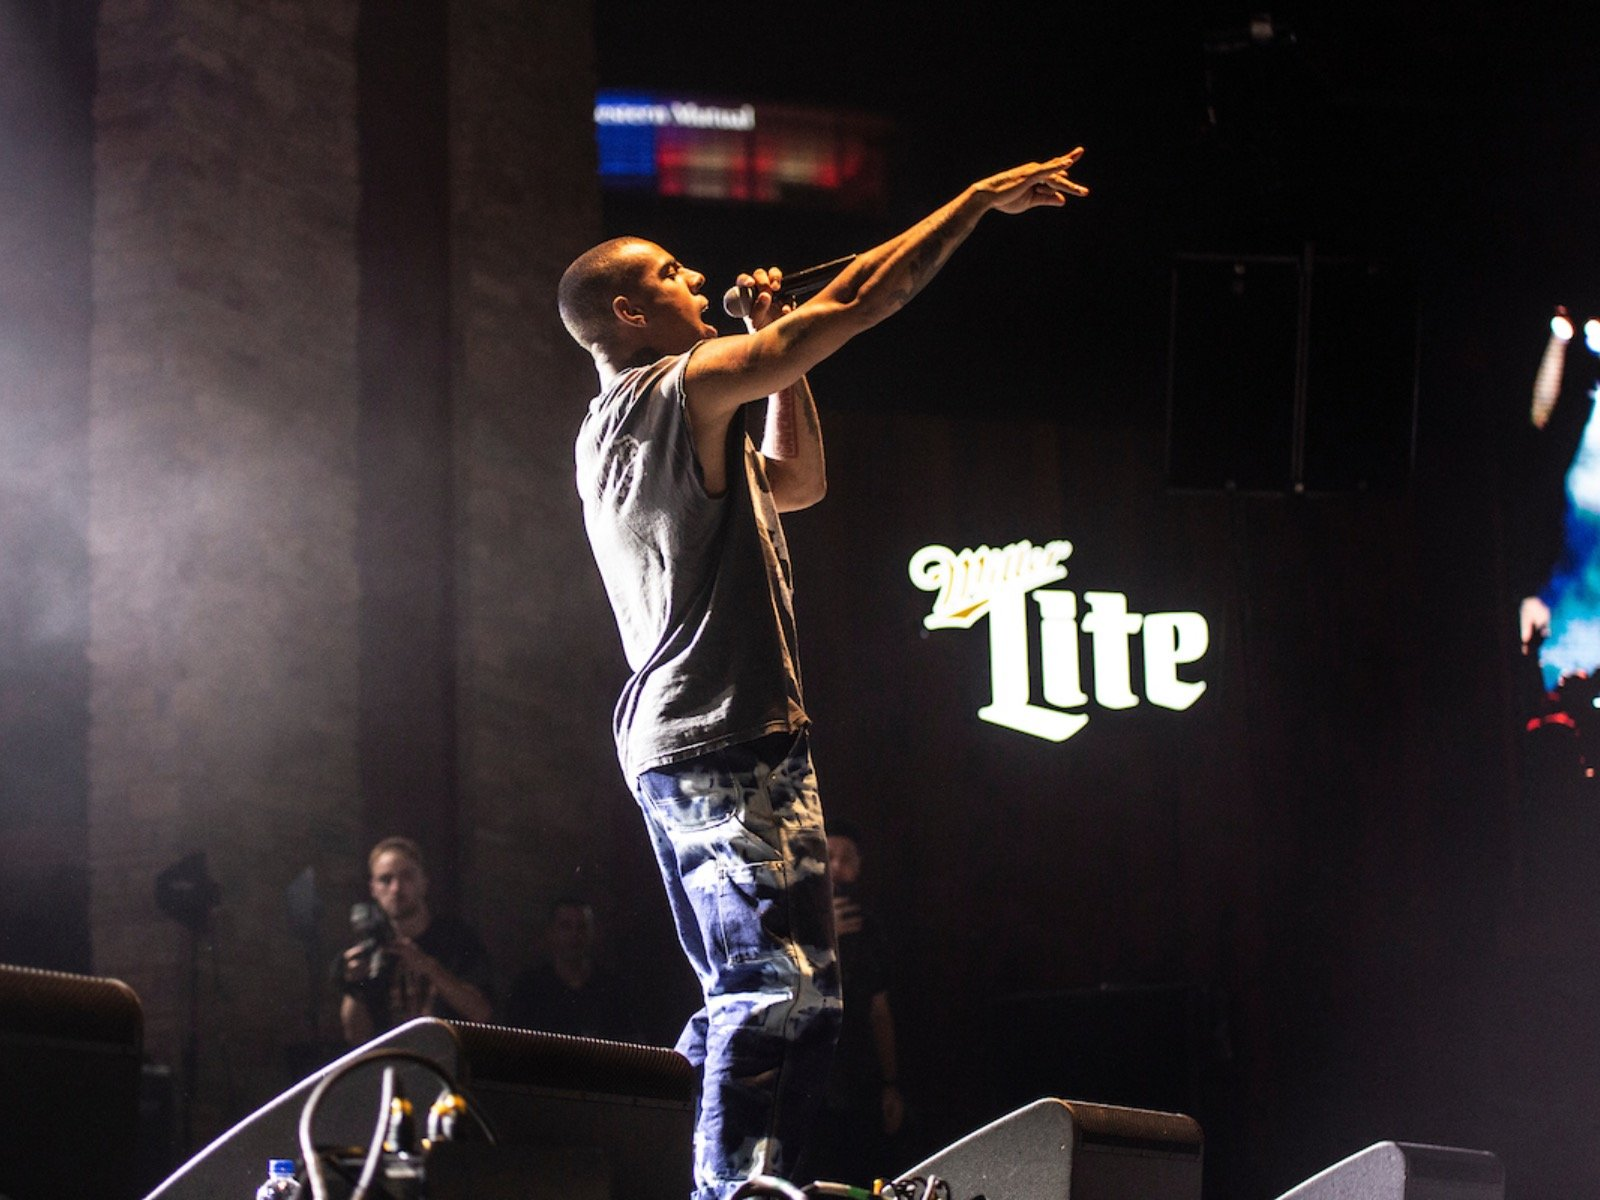 Vic Mensa overcomes a rocky start at his Summerfest debut